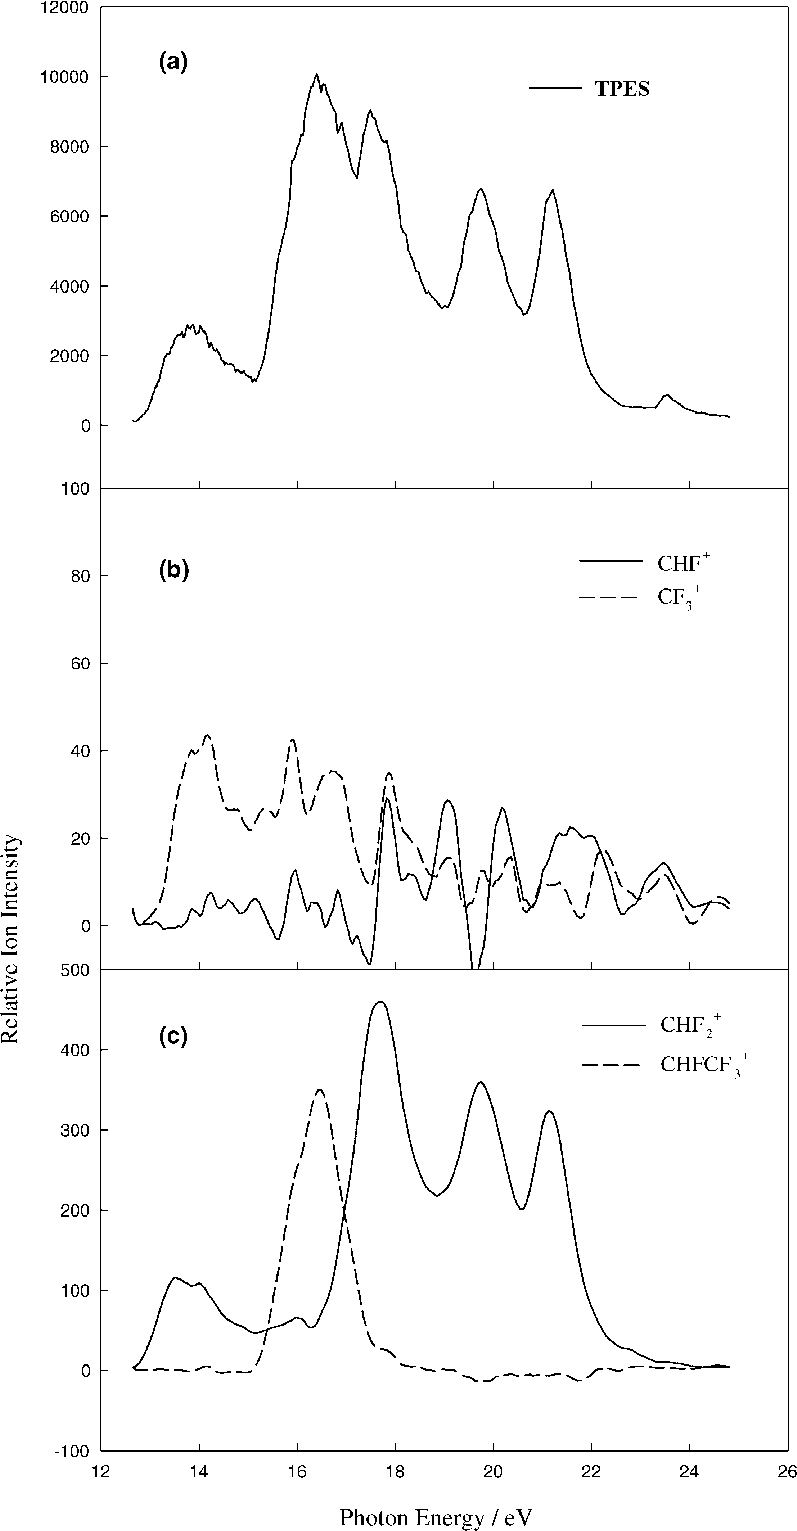 hight resolution of  a tpes of chf 2 cf 3 b and c